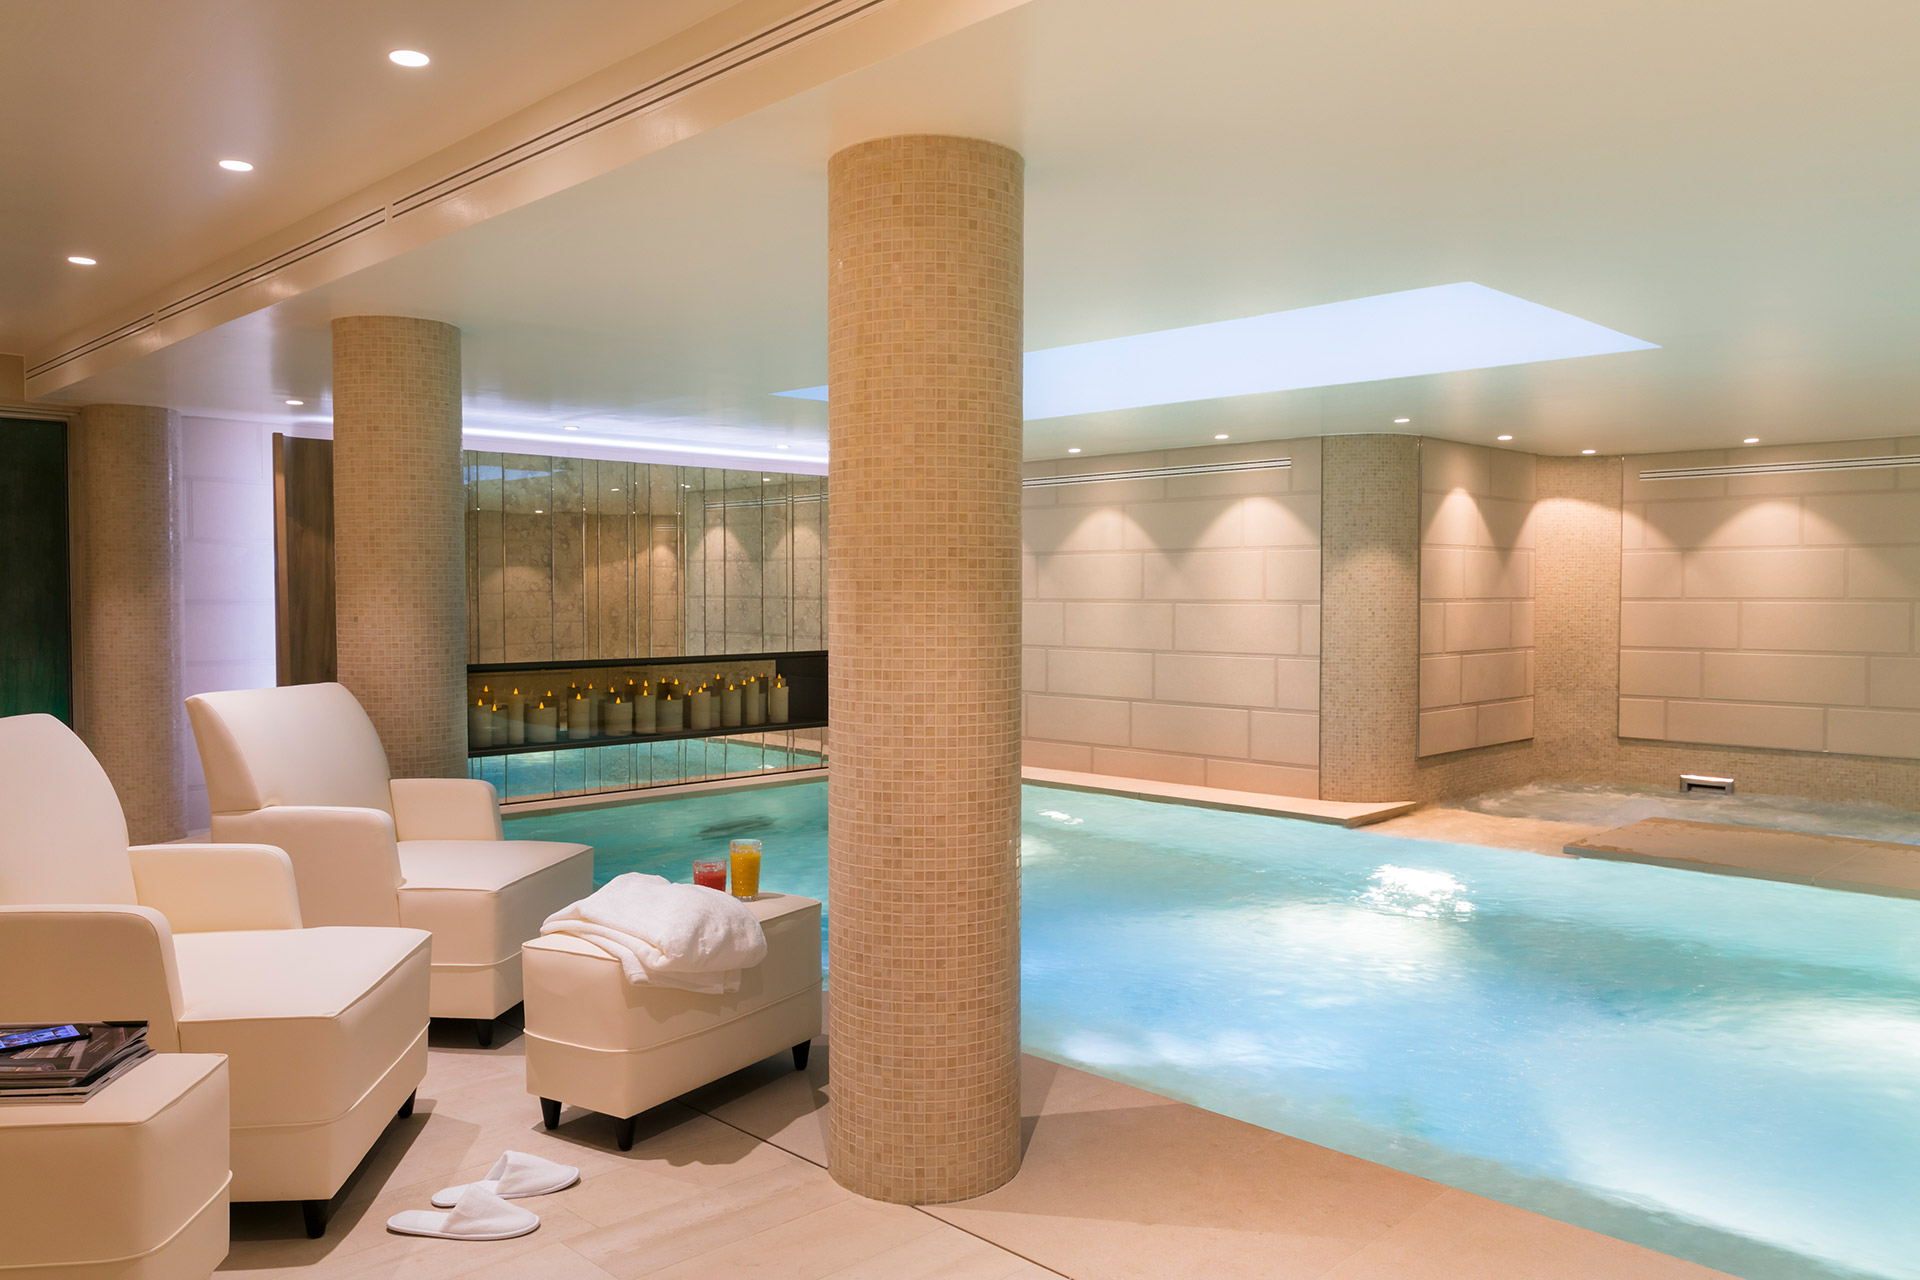 Maison Albar Hotels Le Pont-Neuf indoor swimming pool Spa Pont-Neuf by Cinq Mondes